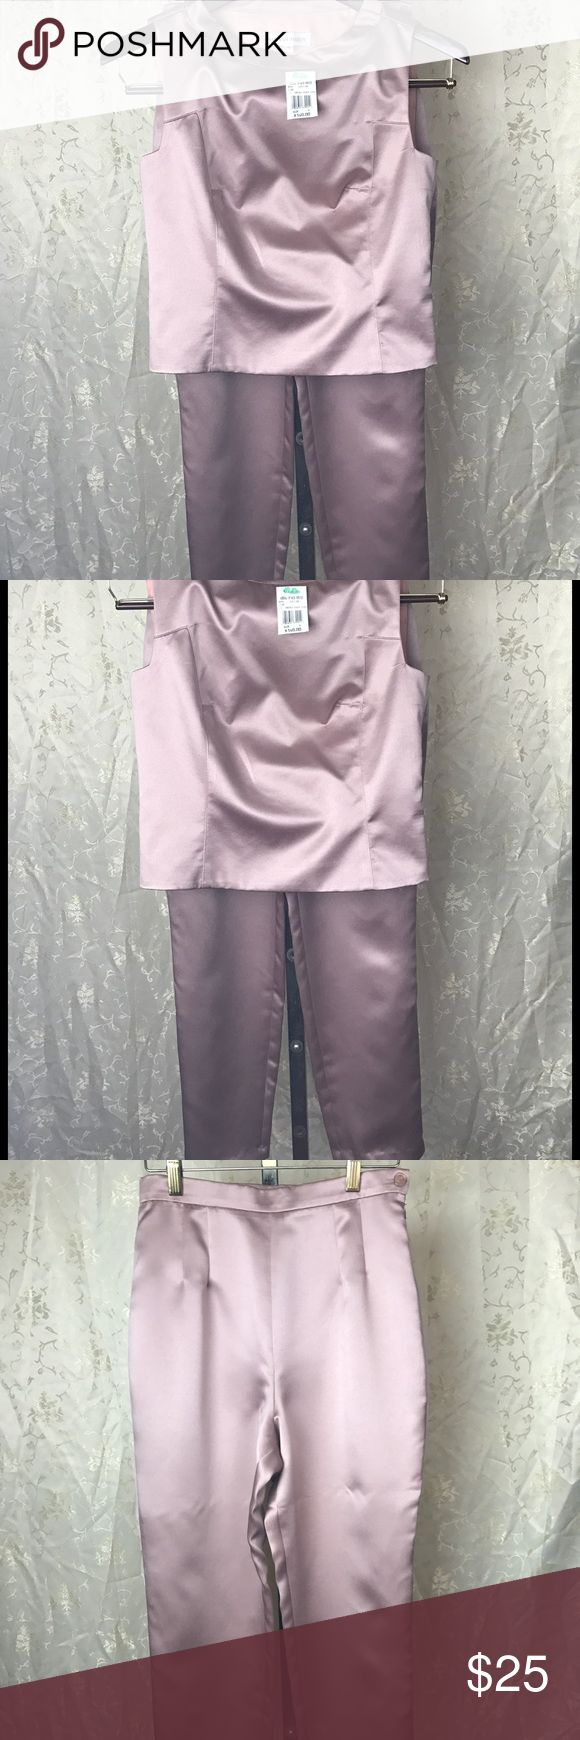 Hannah Hardy pants suit Beautiful Hannah Hardly pant suit in sz. 4 in a very soft rose pink color/sleeveless top has a zipper on the side and also the pants have a zipper on the side! 100% polyester lining/100% acutate Hannah Hardy Other